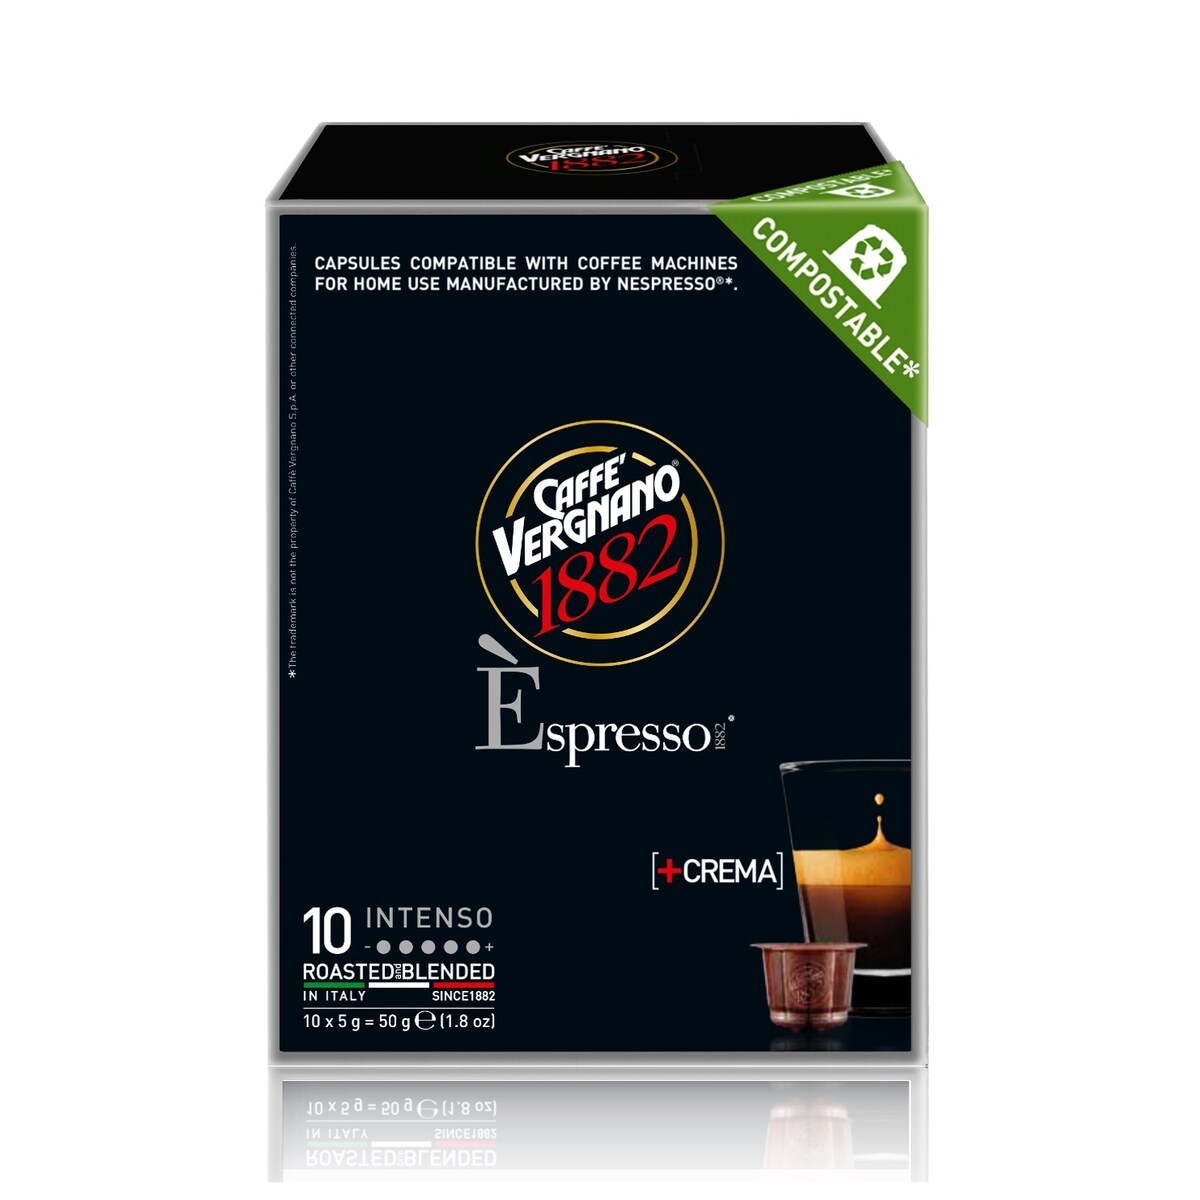 Vergnano Intenso капсули за Nespresso кафемашина